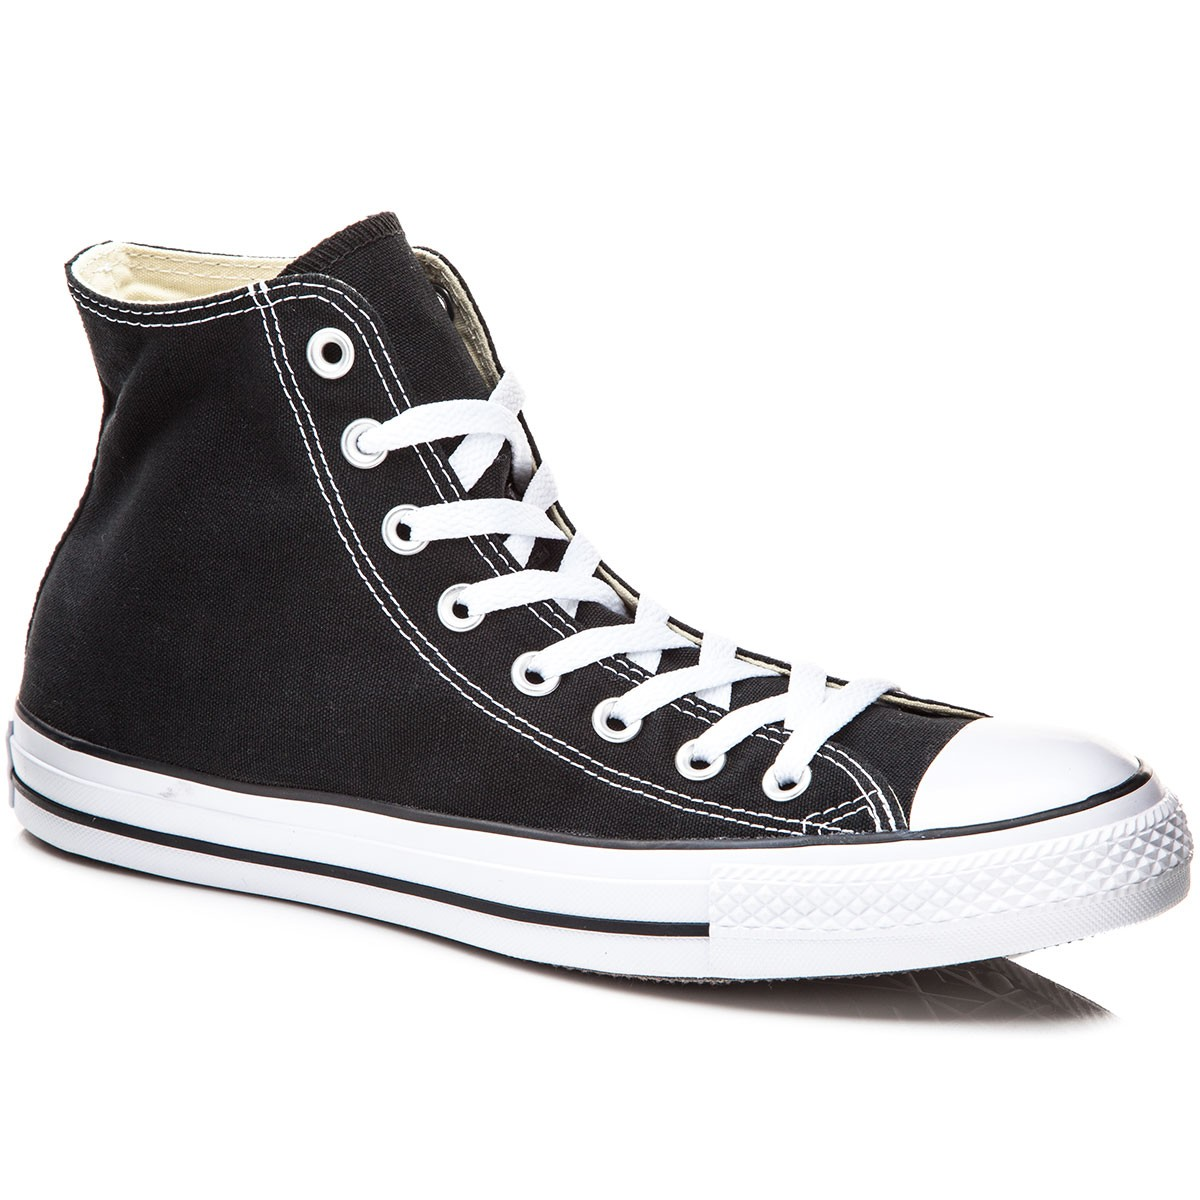 converse we love you chucks marketing Converse all stars – more particularly, the famous chuck taylor all stars known throughout the world as cons, connies, convics, verses, chuckers, chuckies, chucks, and a host of other nicknames the cool quotient of the iconic converse brand is unquestionable.